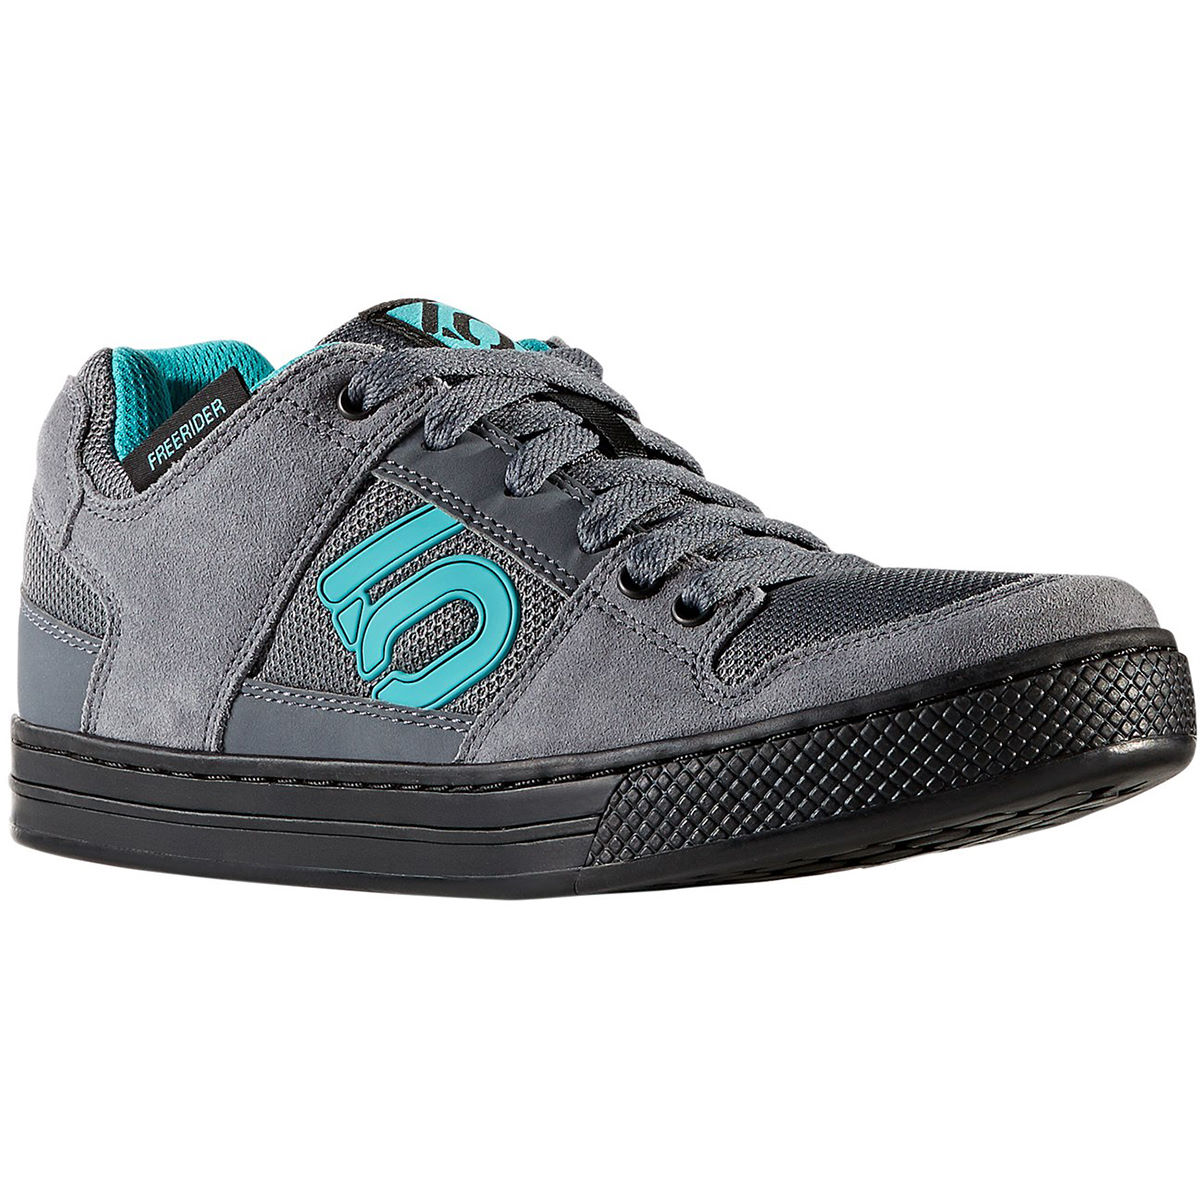 Five Ten Women's Freerider MTB Shoes - Zapatillas de ciclismo